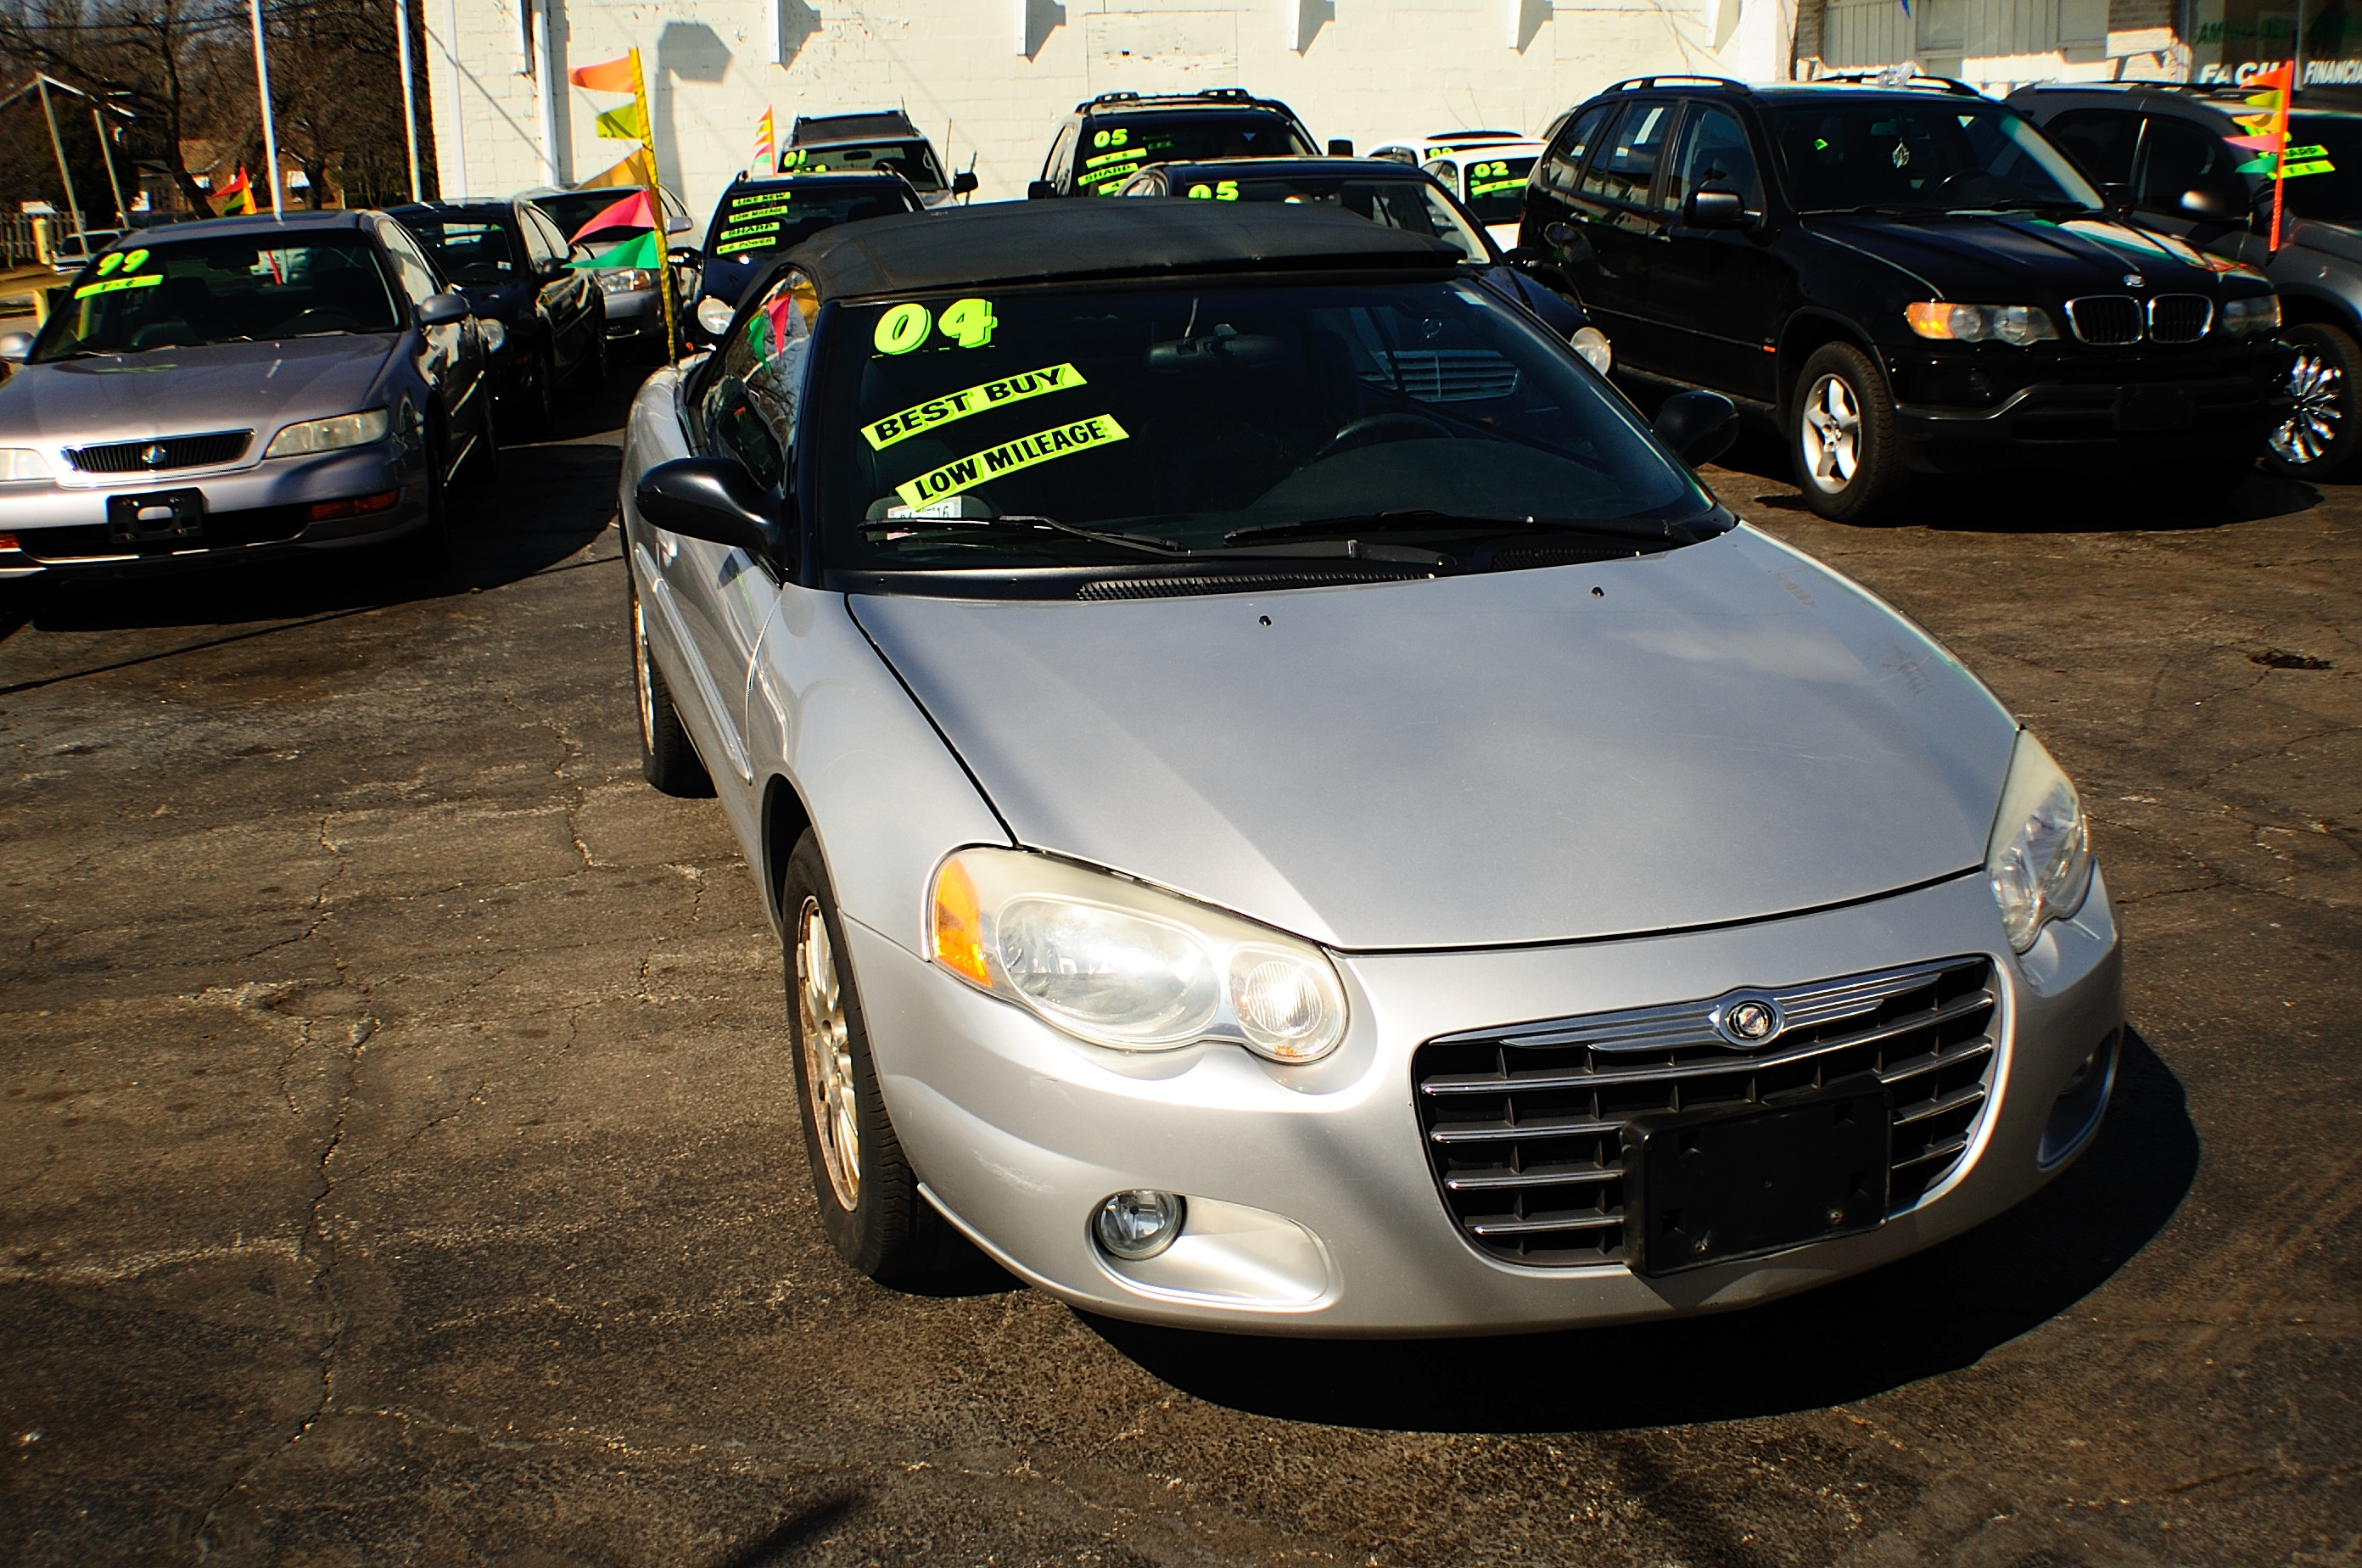 2004 Chrysler Sebring Silver Convertible used car sale Kenosha Mchenry Bannockburn Barrington